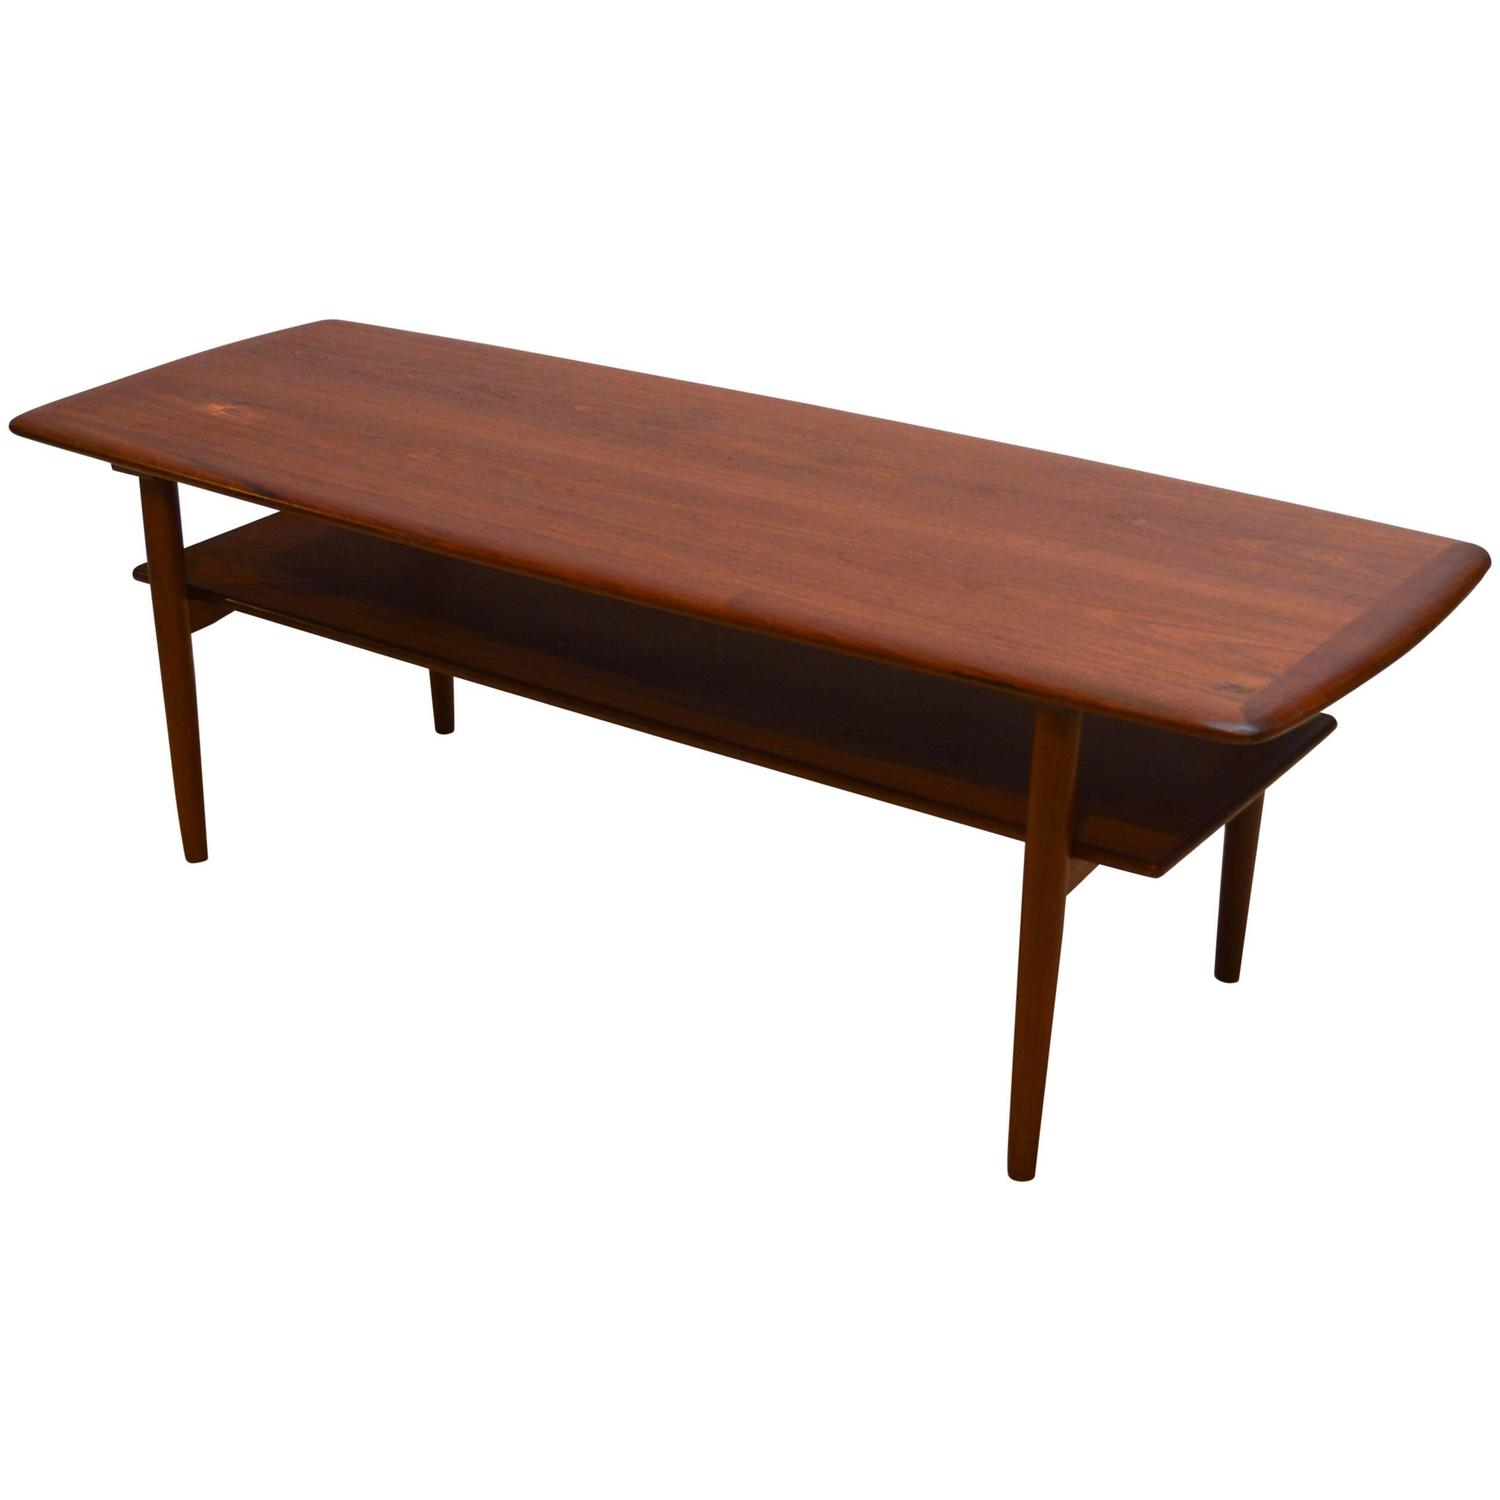 danish modern teak coffee table with shelf at 1stdibs. Black Bedroom Furniture Sets. Home Design Ideas